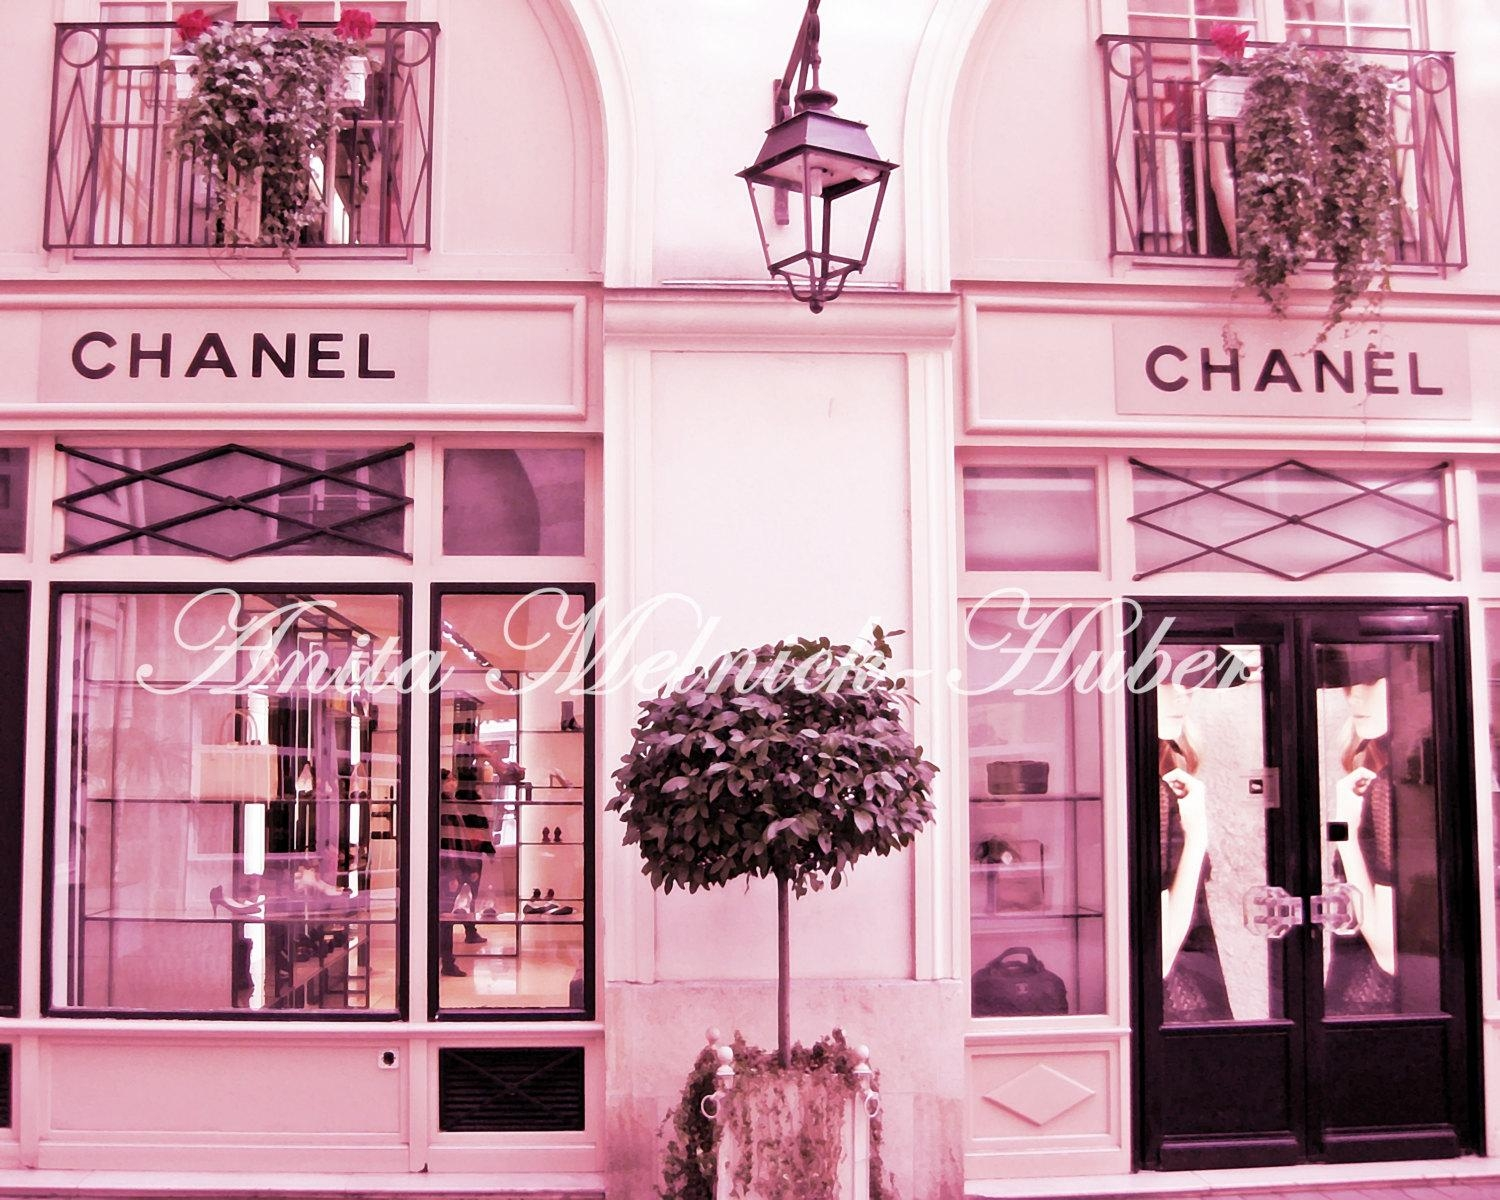 Chanel Print Paris In Pink Paris Wall Art Fashion Pertaining To Paris Theme Nursery Wall Art (View 11 of 20)